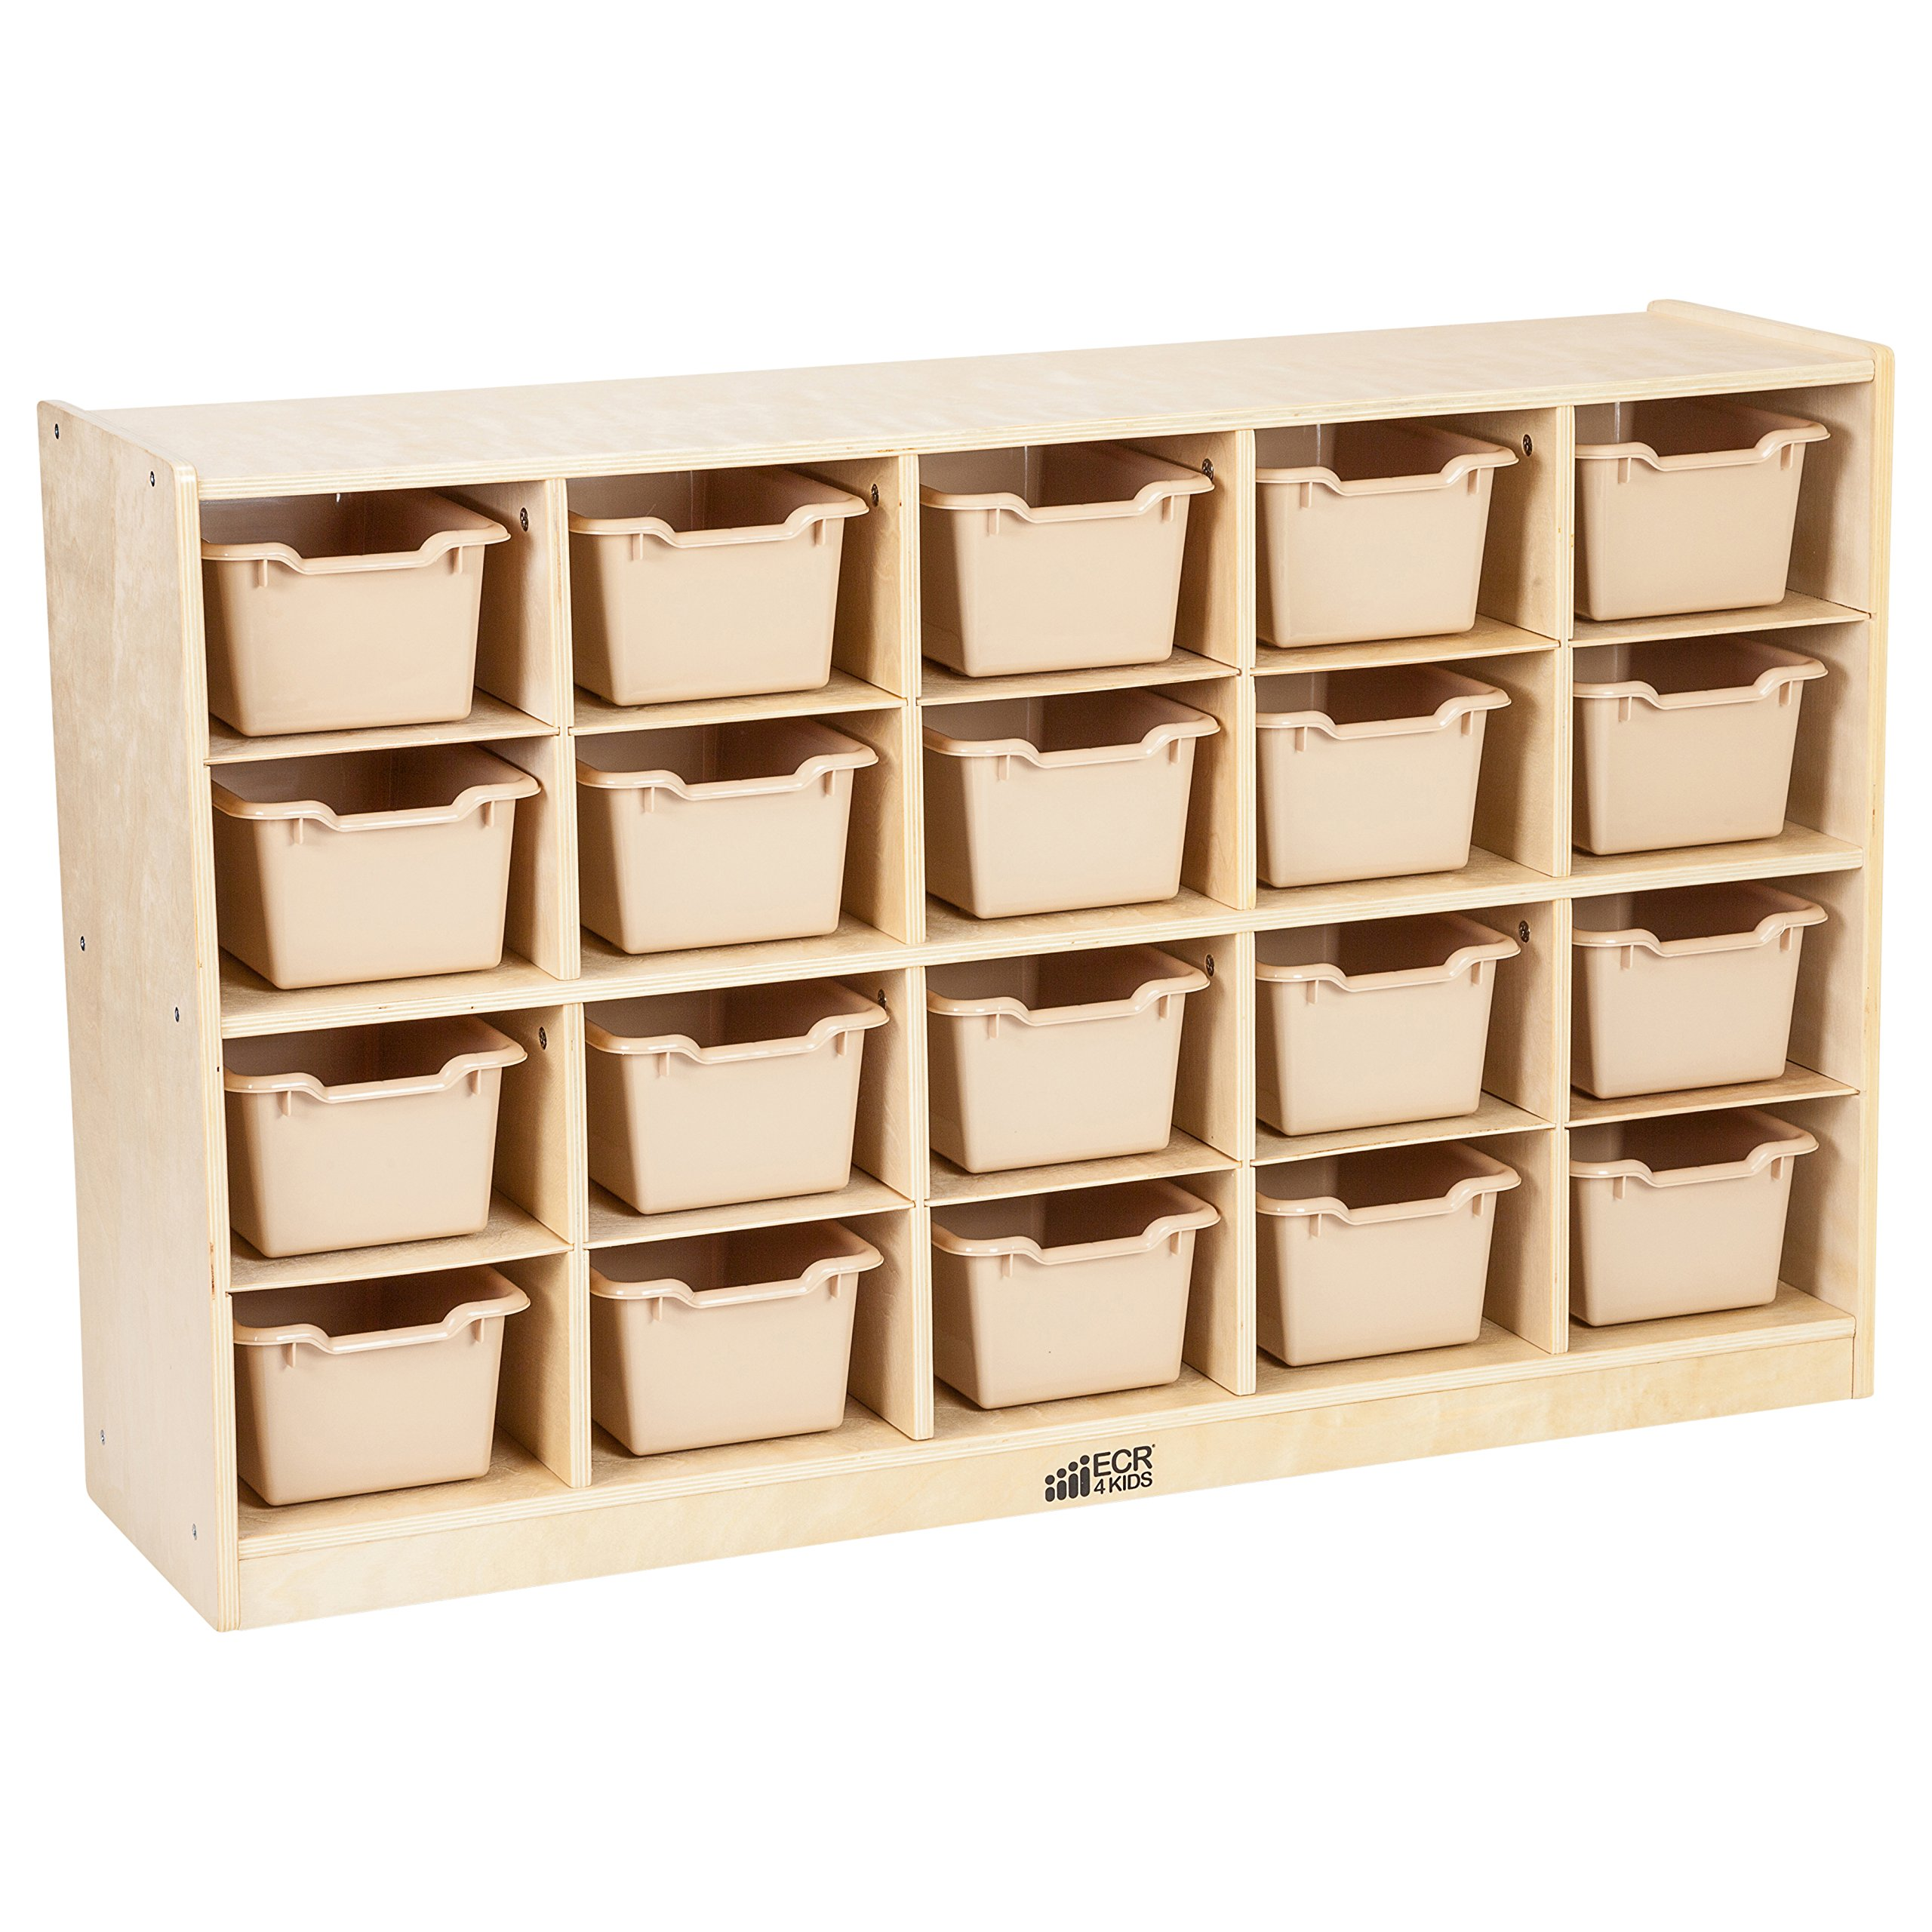 ECR4Kids Birch 20 Cubbie Tray Cabinet with Scoop Front Bins, Sand